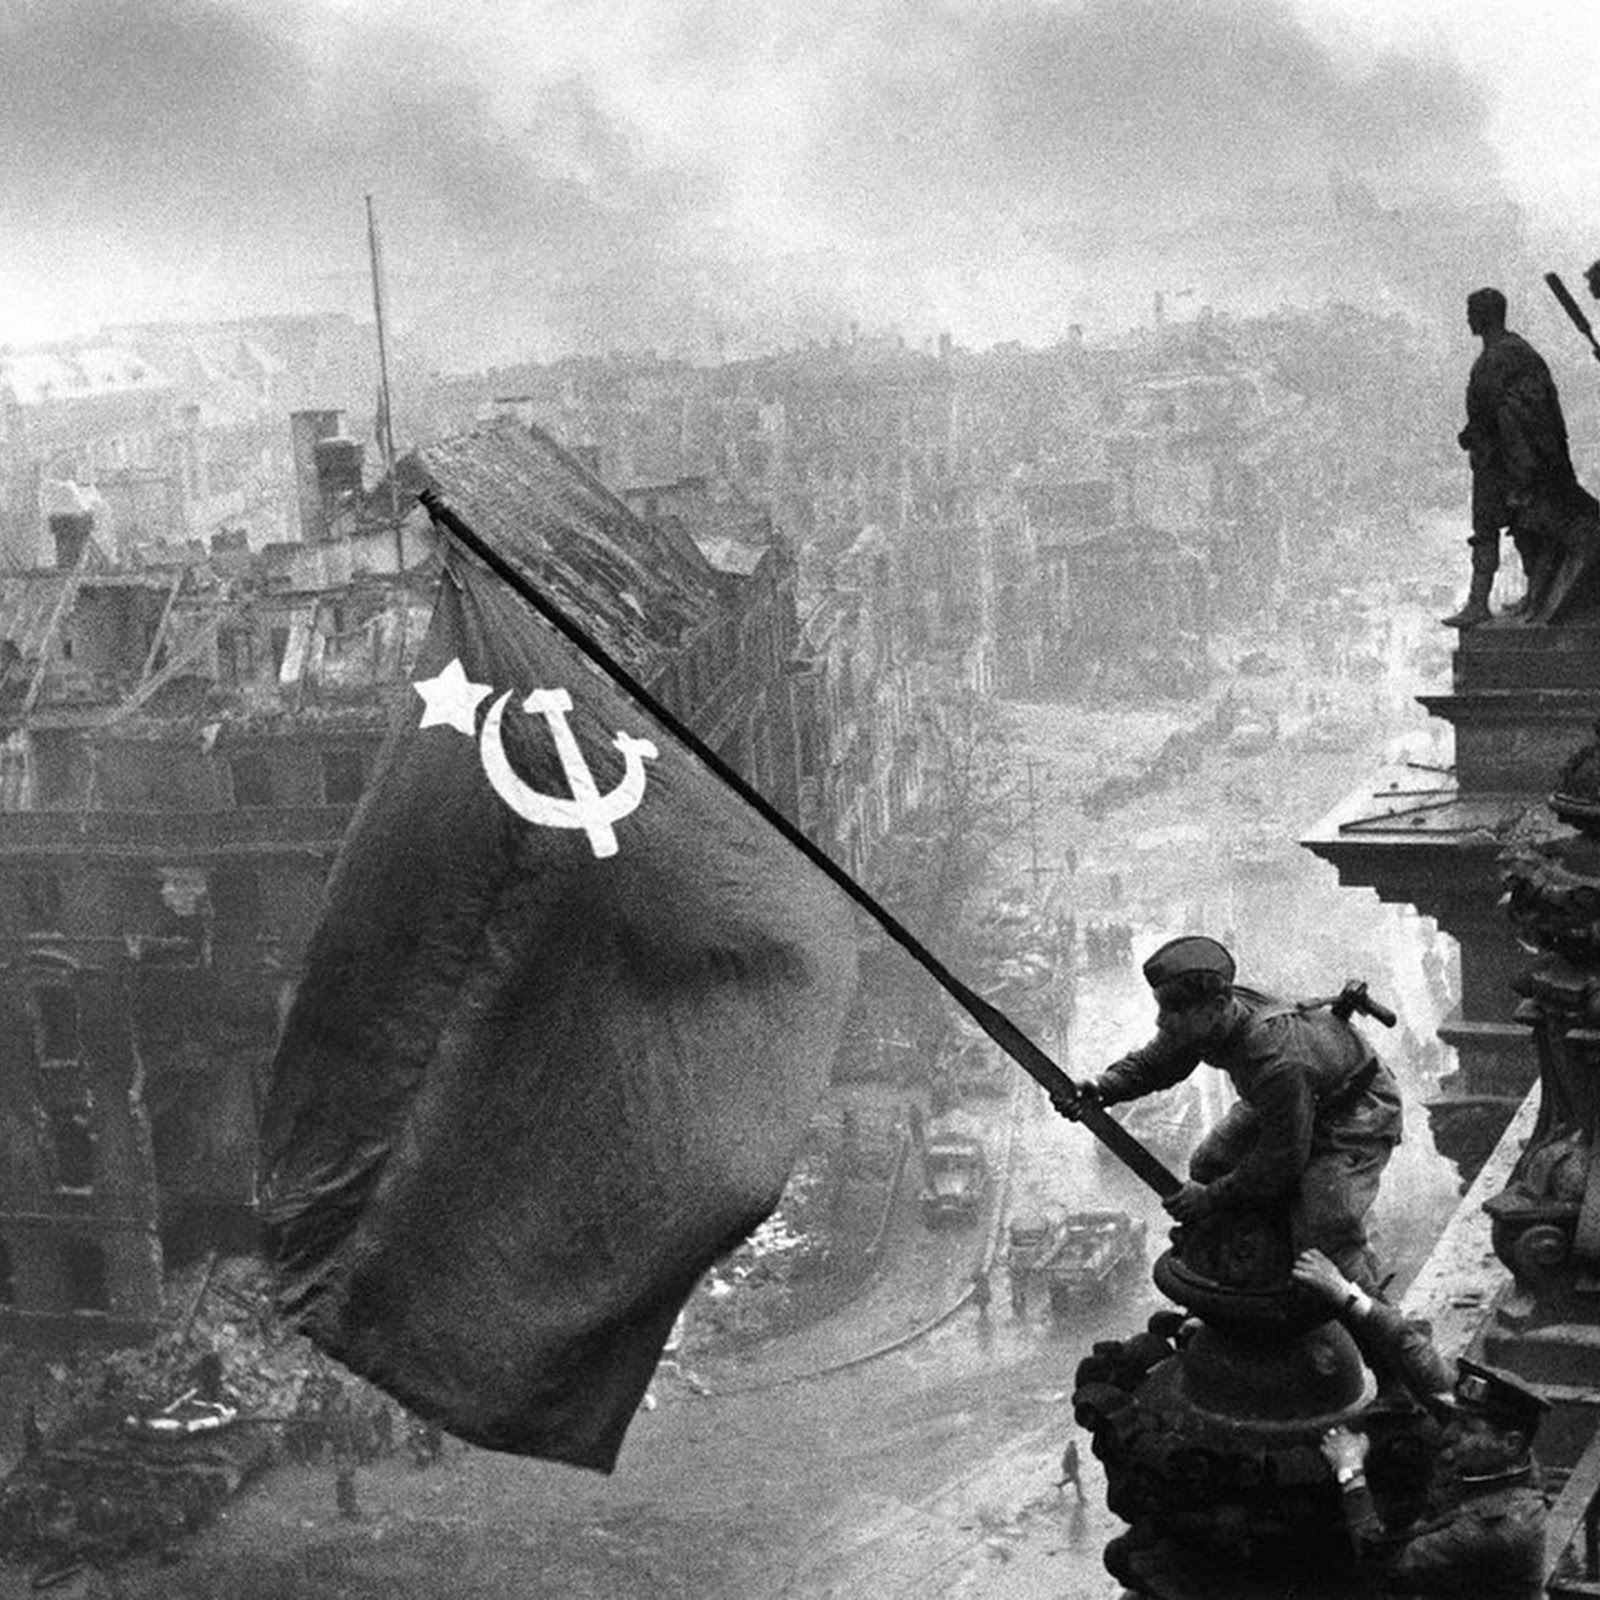 World War II's Other Iconic Photo: Raising A Flag Over The Reichstag